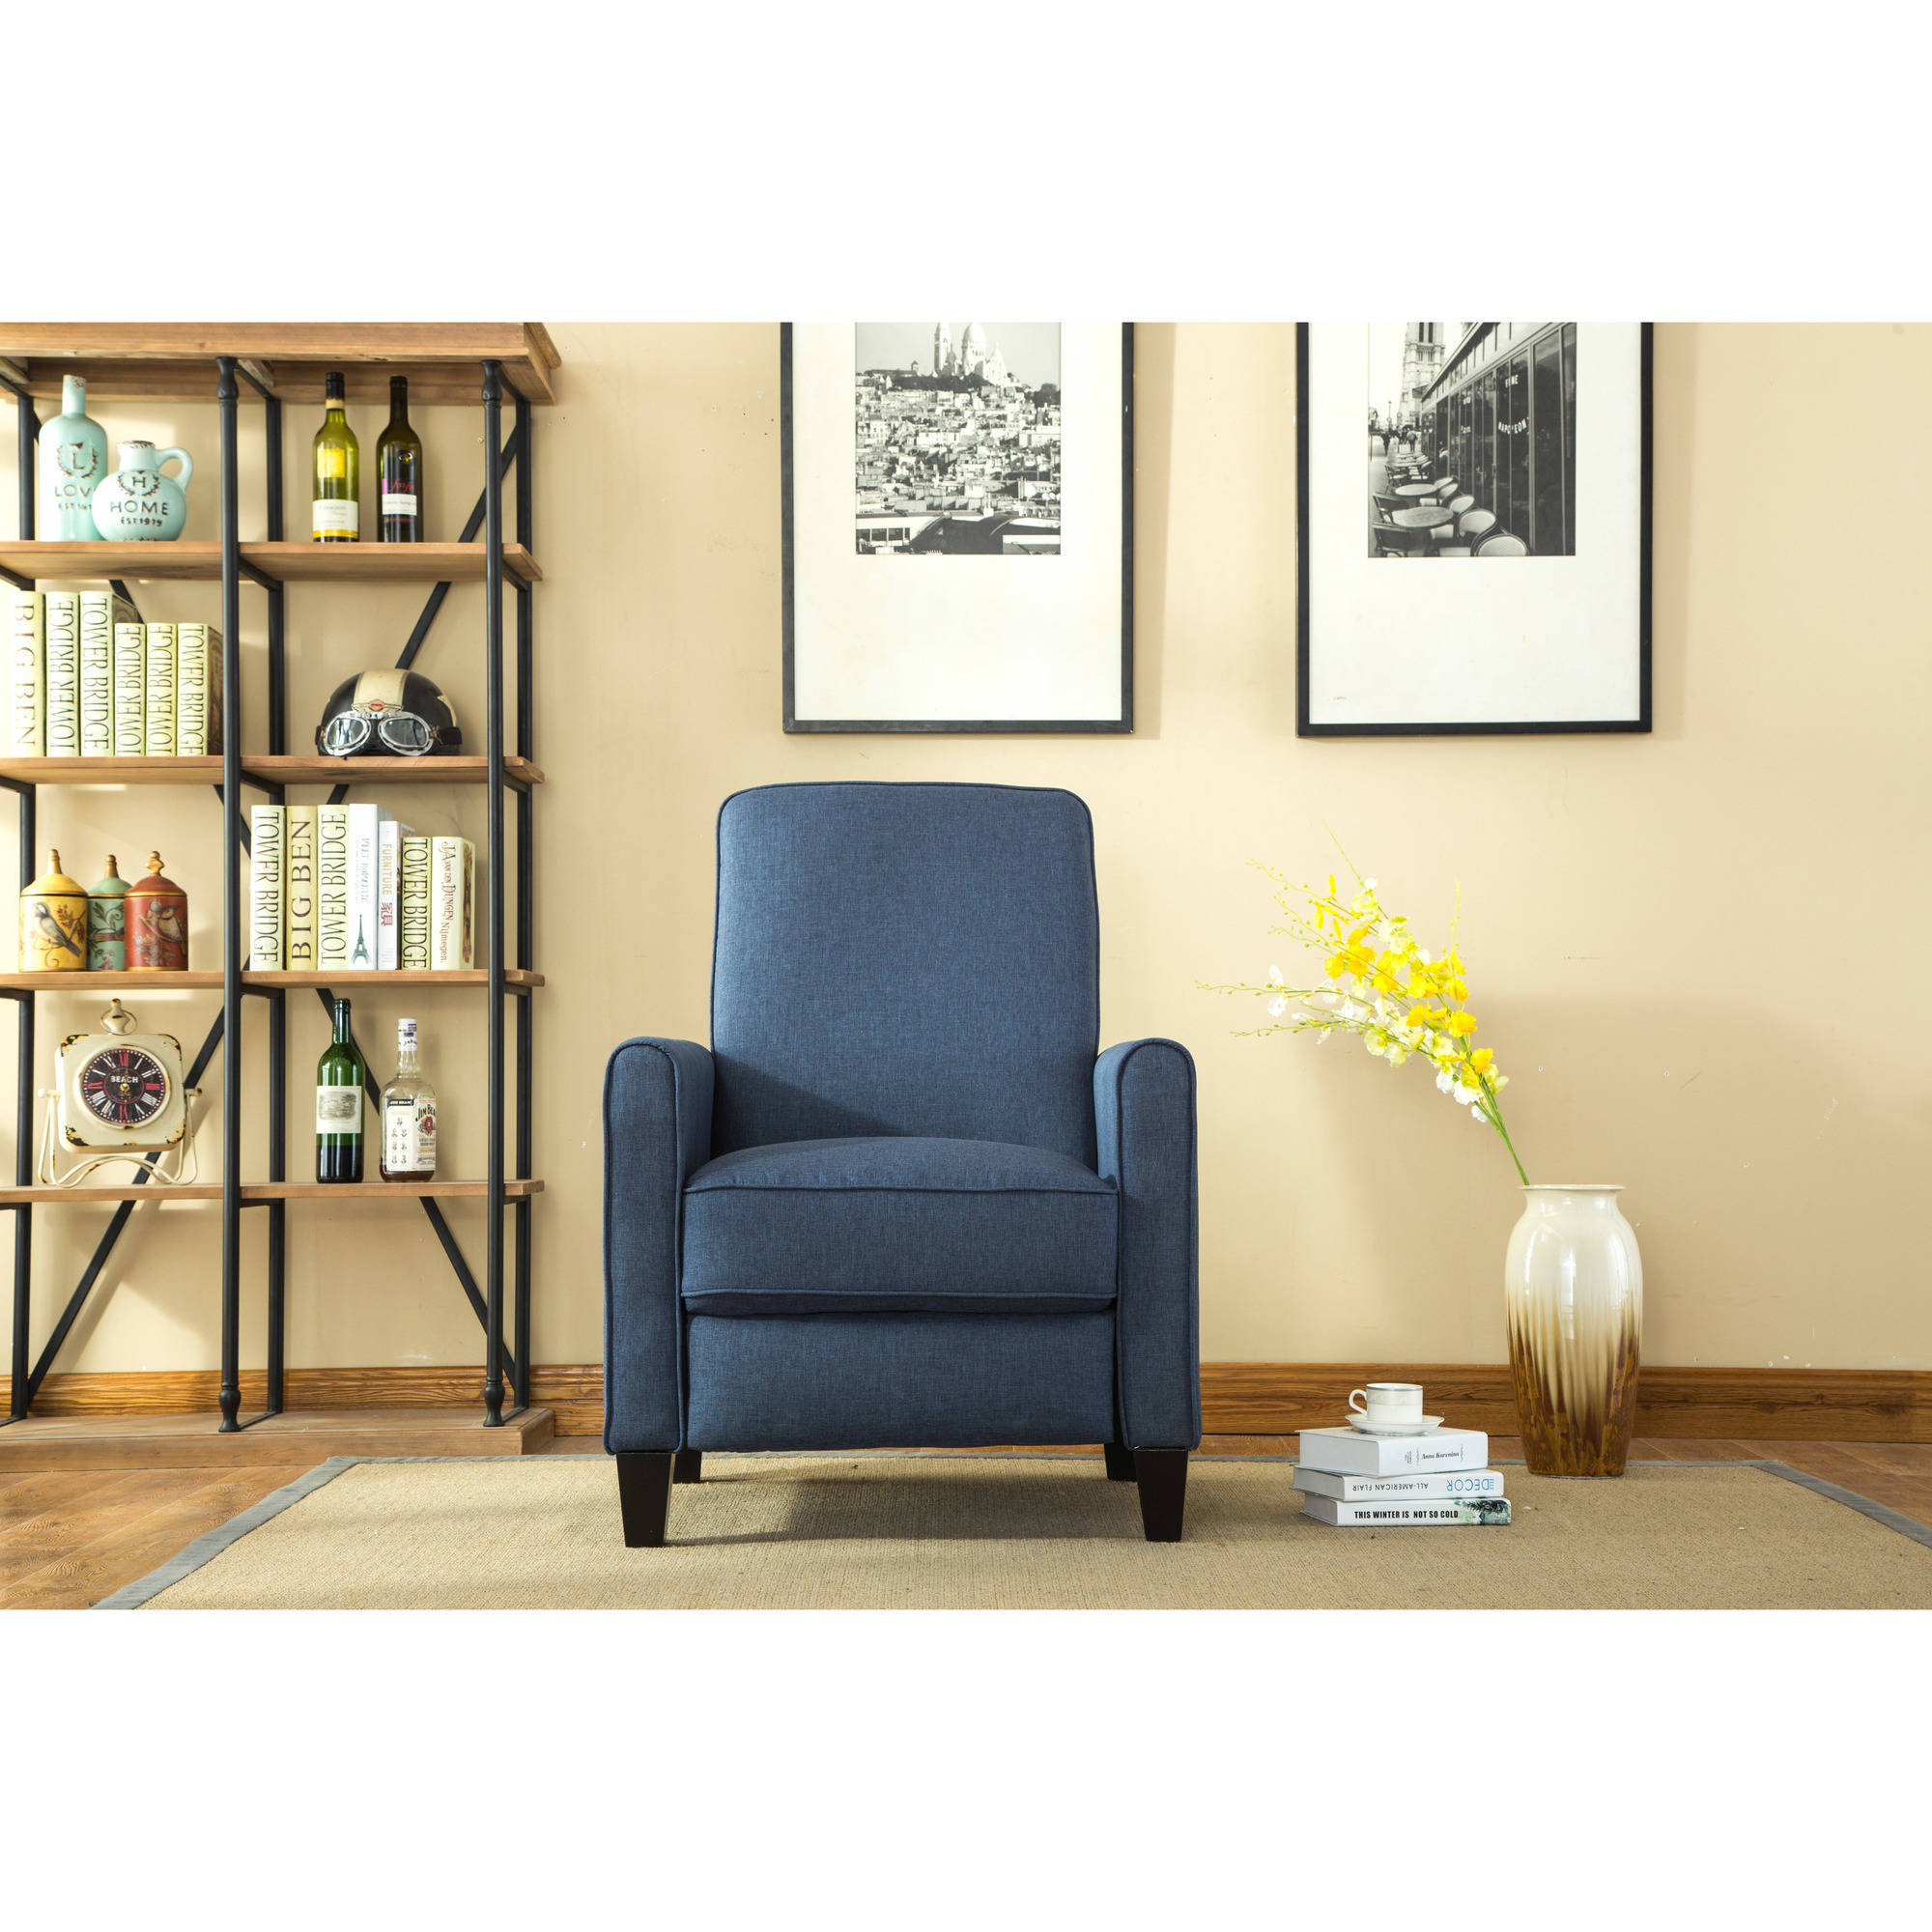 Best Place For Home Decor: Best Selling Home Decor Darvis Push Back Recliner